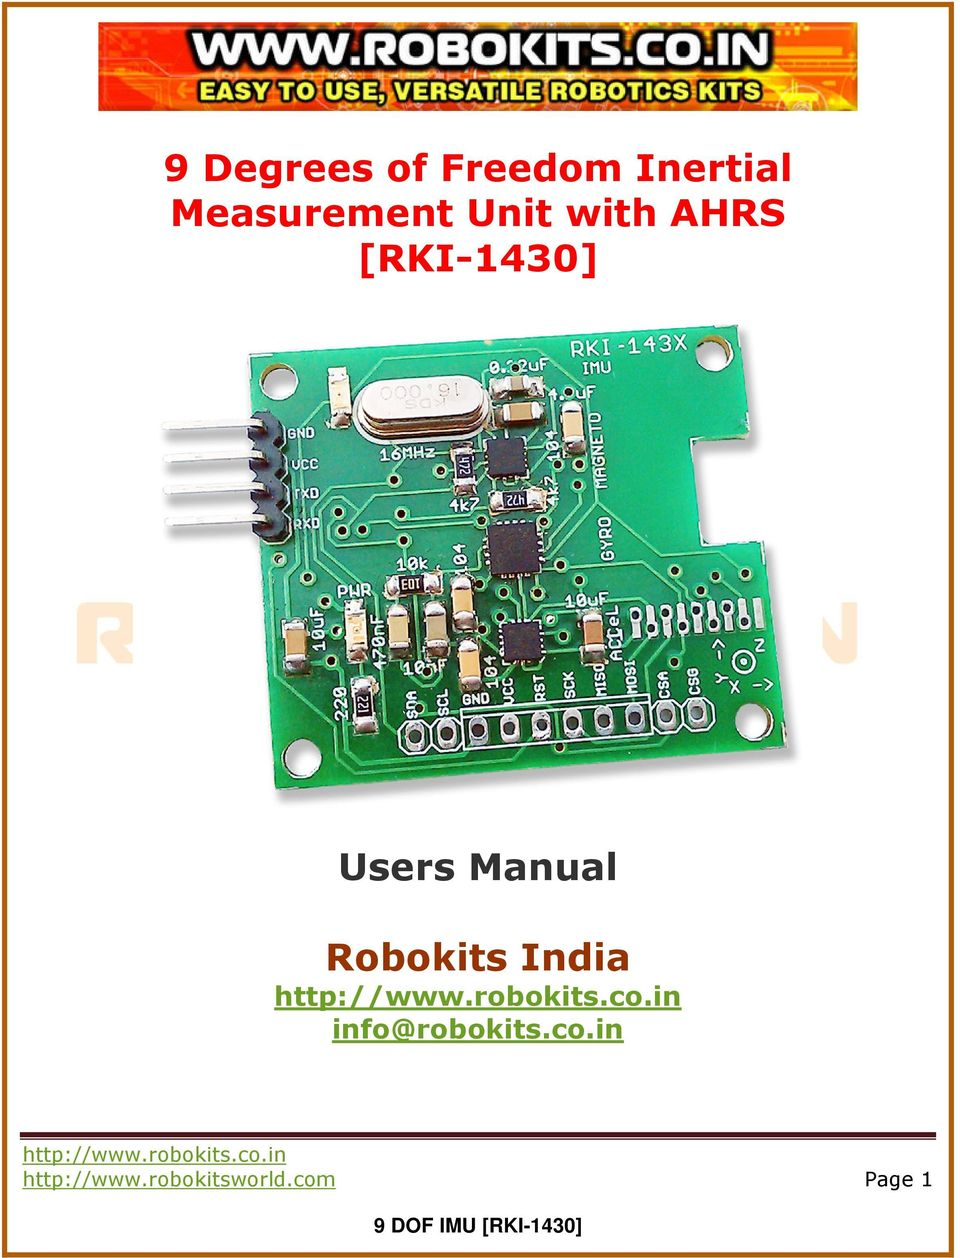 Users Manual Robokits India